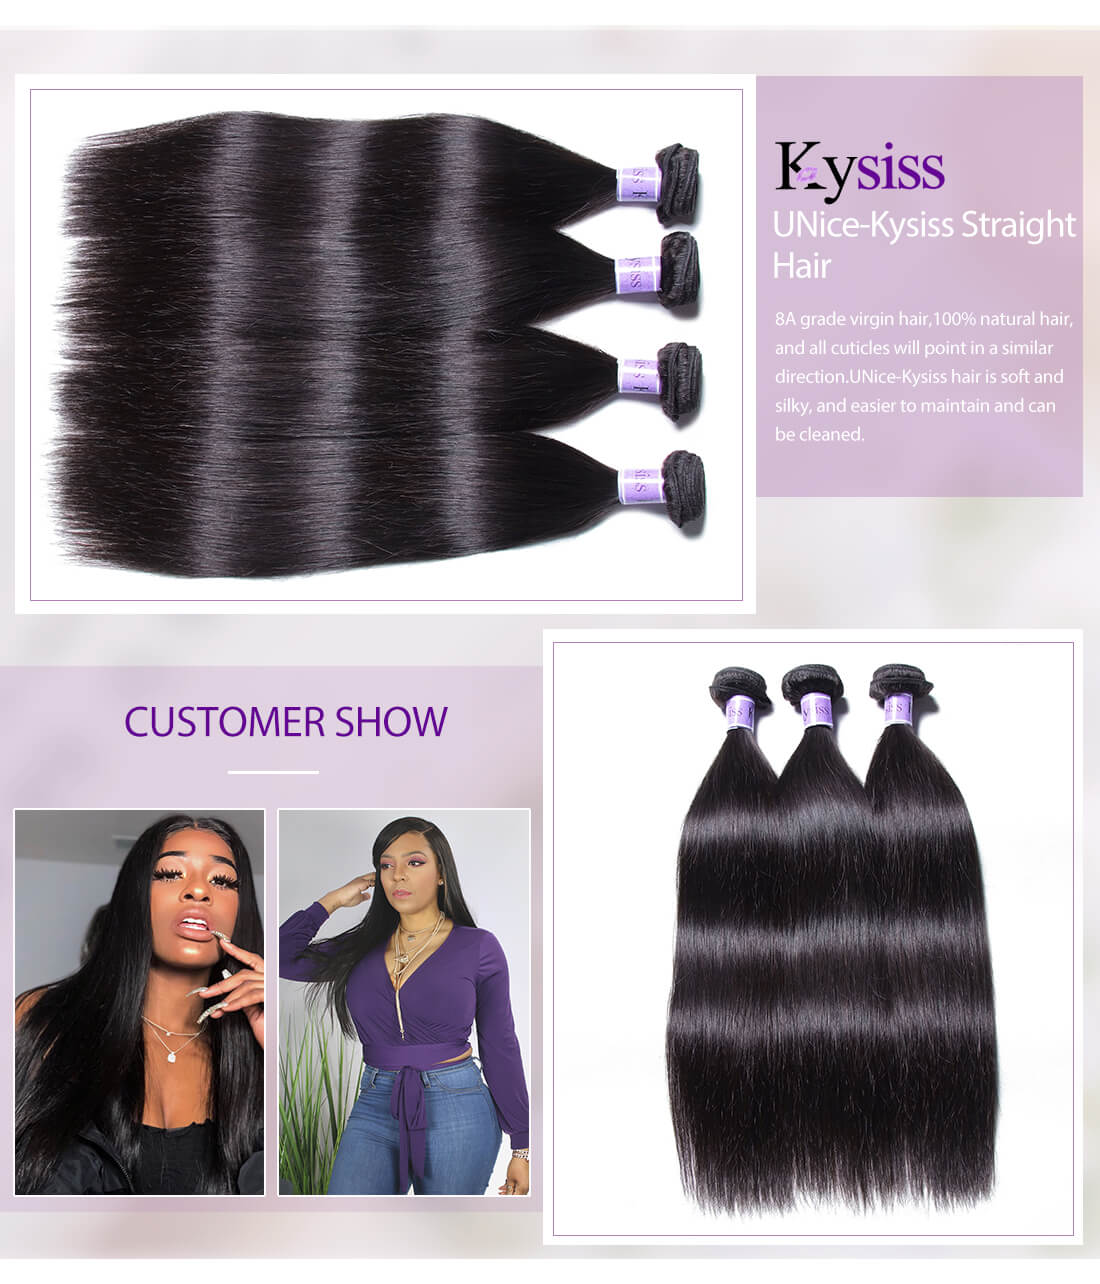 UNice Hair Kysiss Series Straight Hair